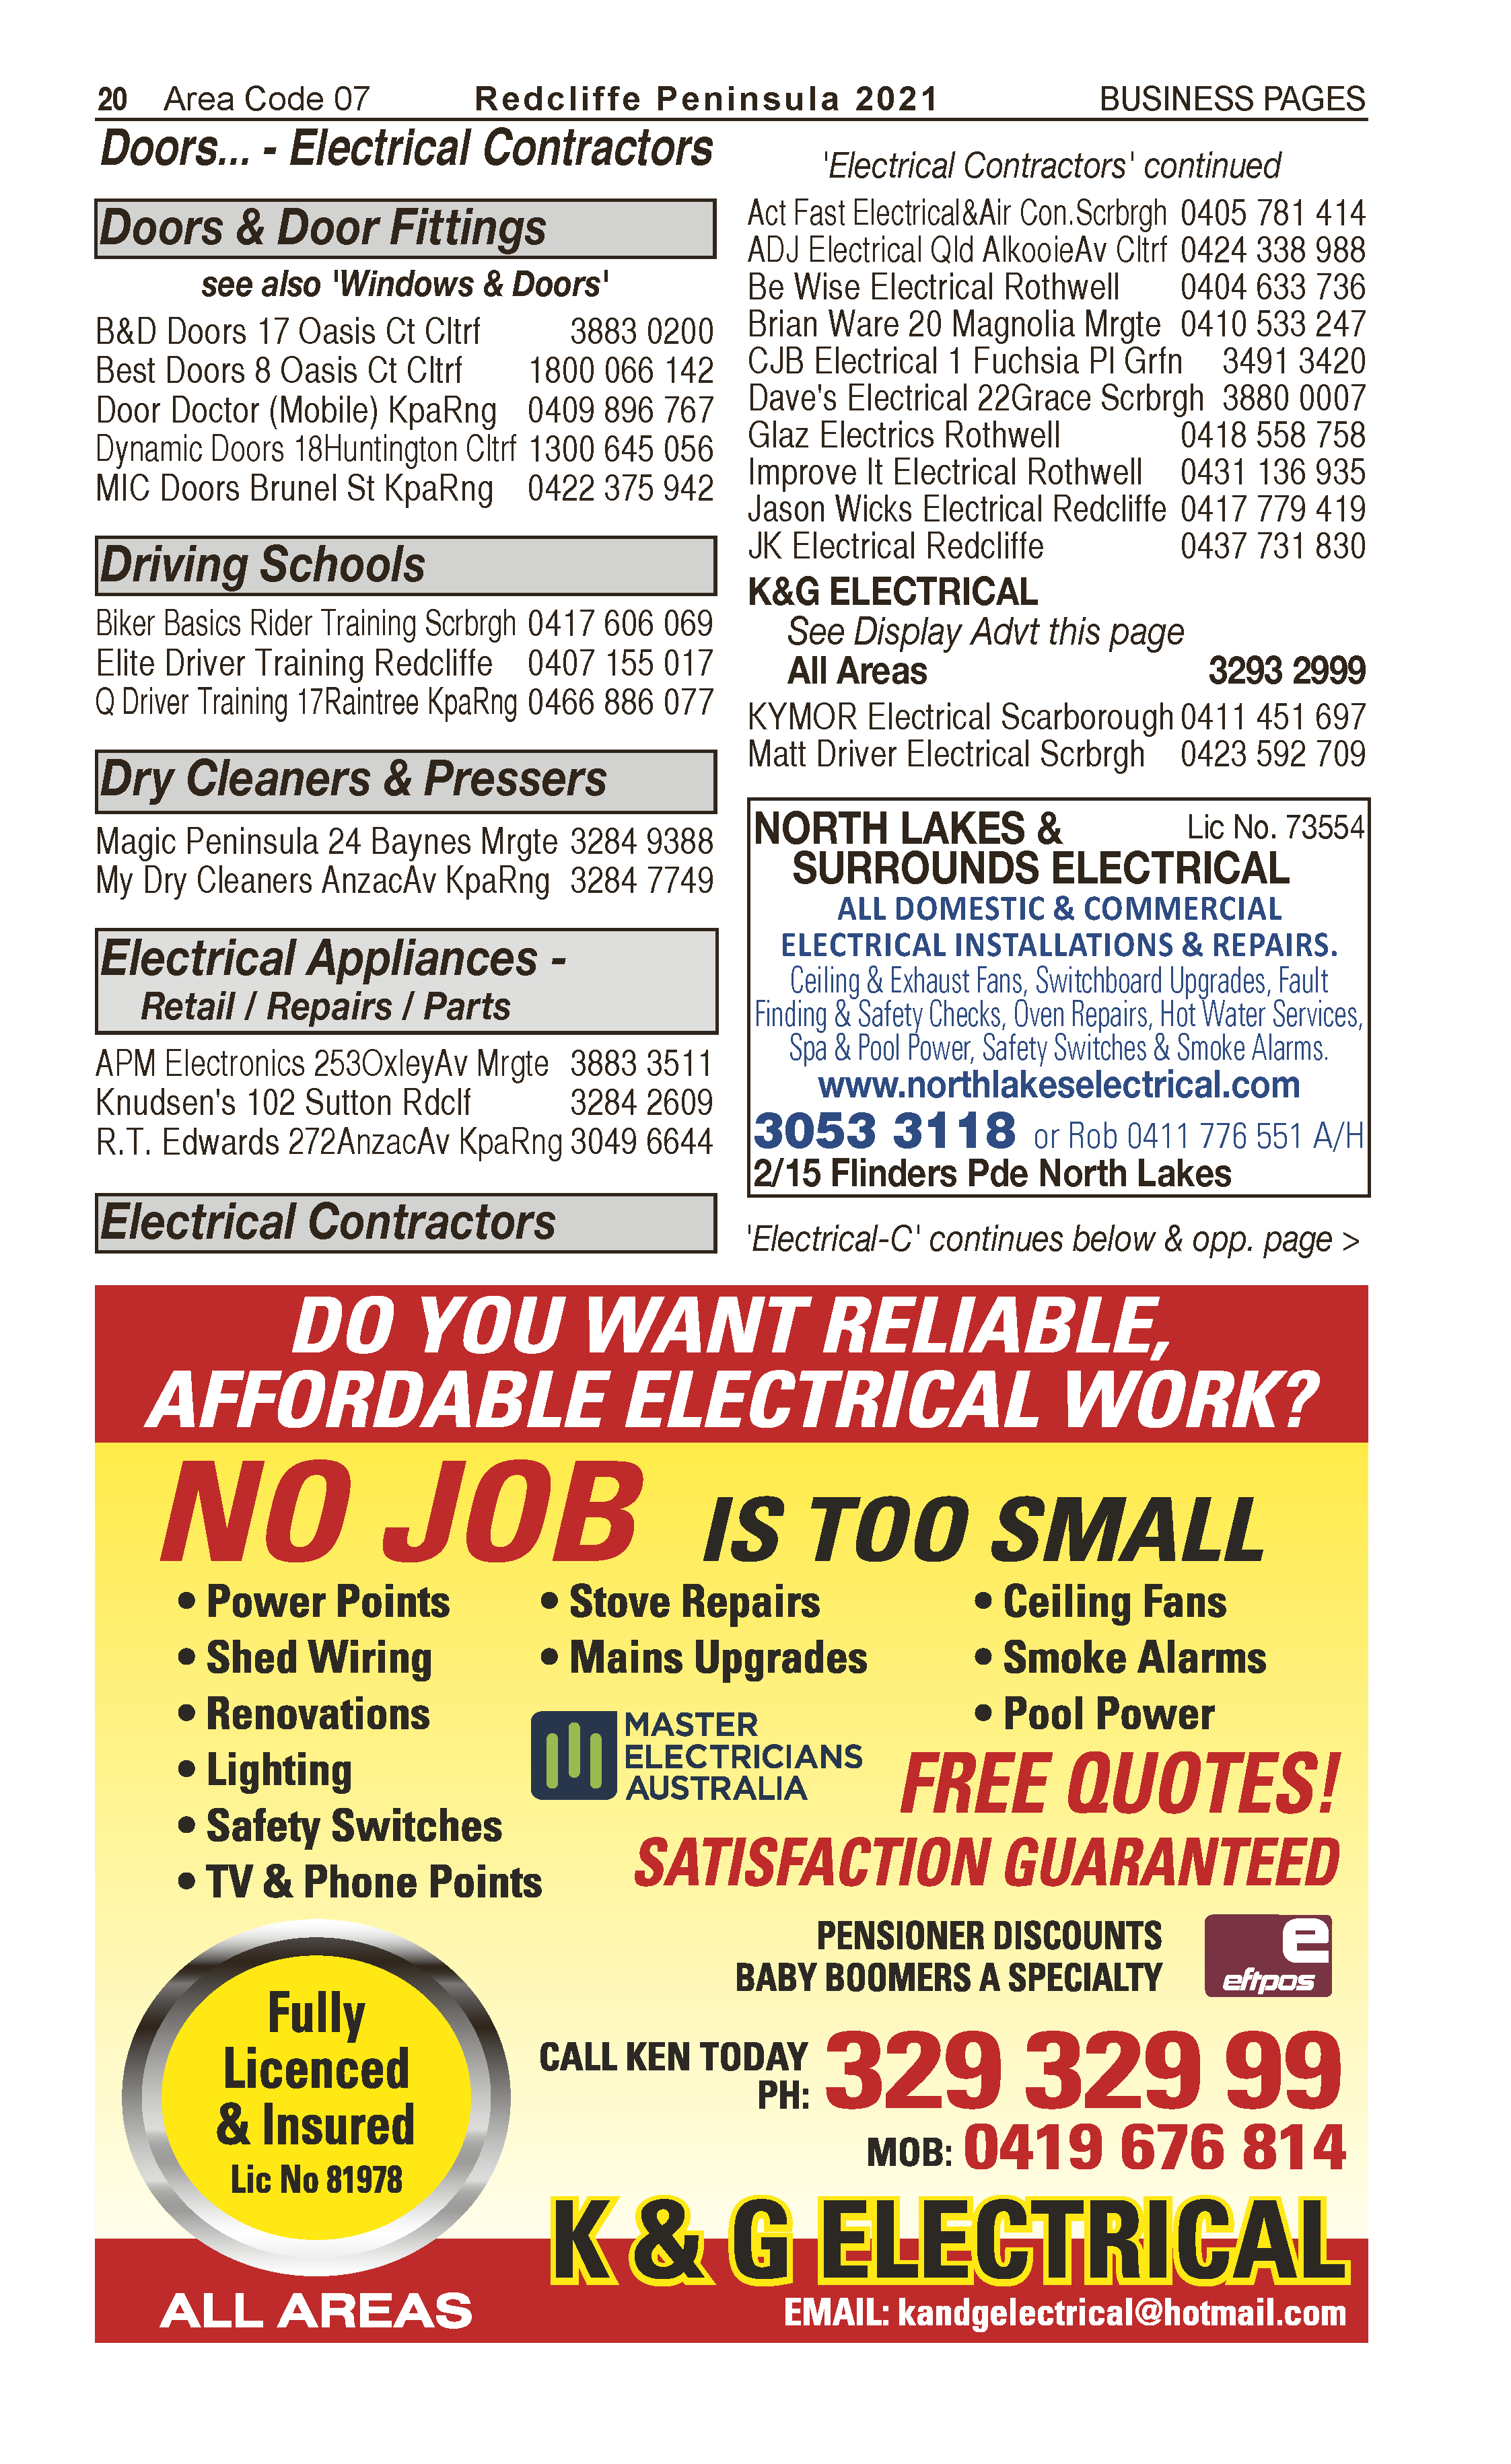 North Lakes & Surrounds Electrical | Electrical Contractors in North Lakes | PBezy Pocket Books local directories - page 20